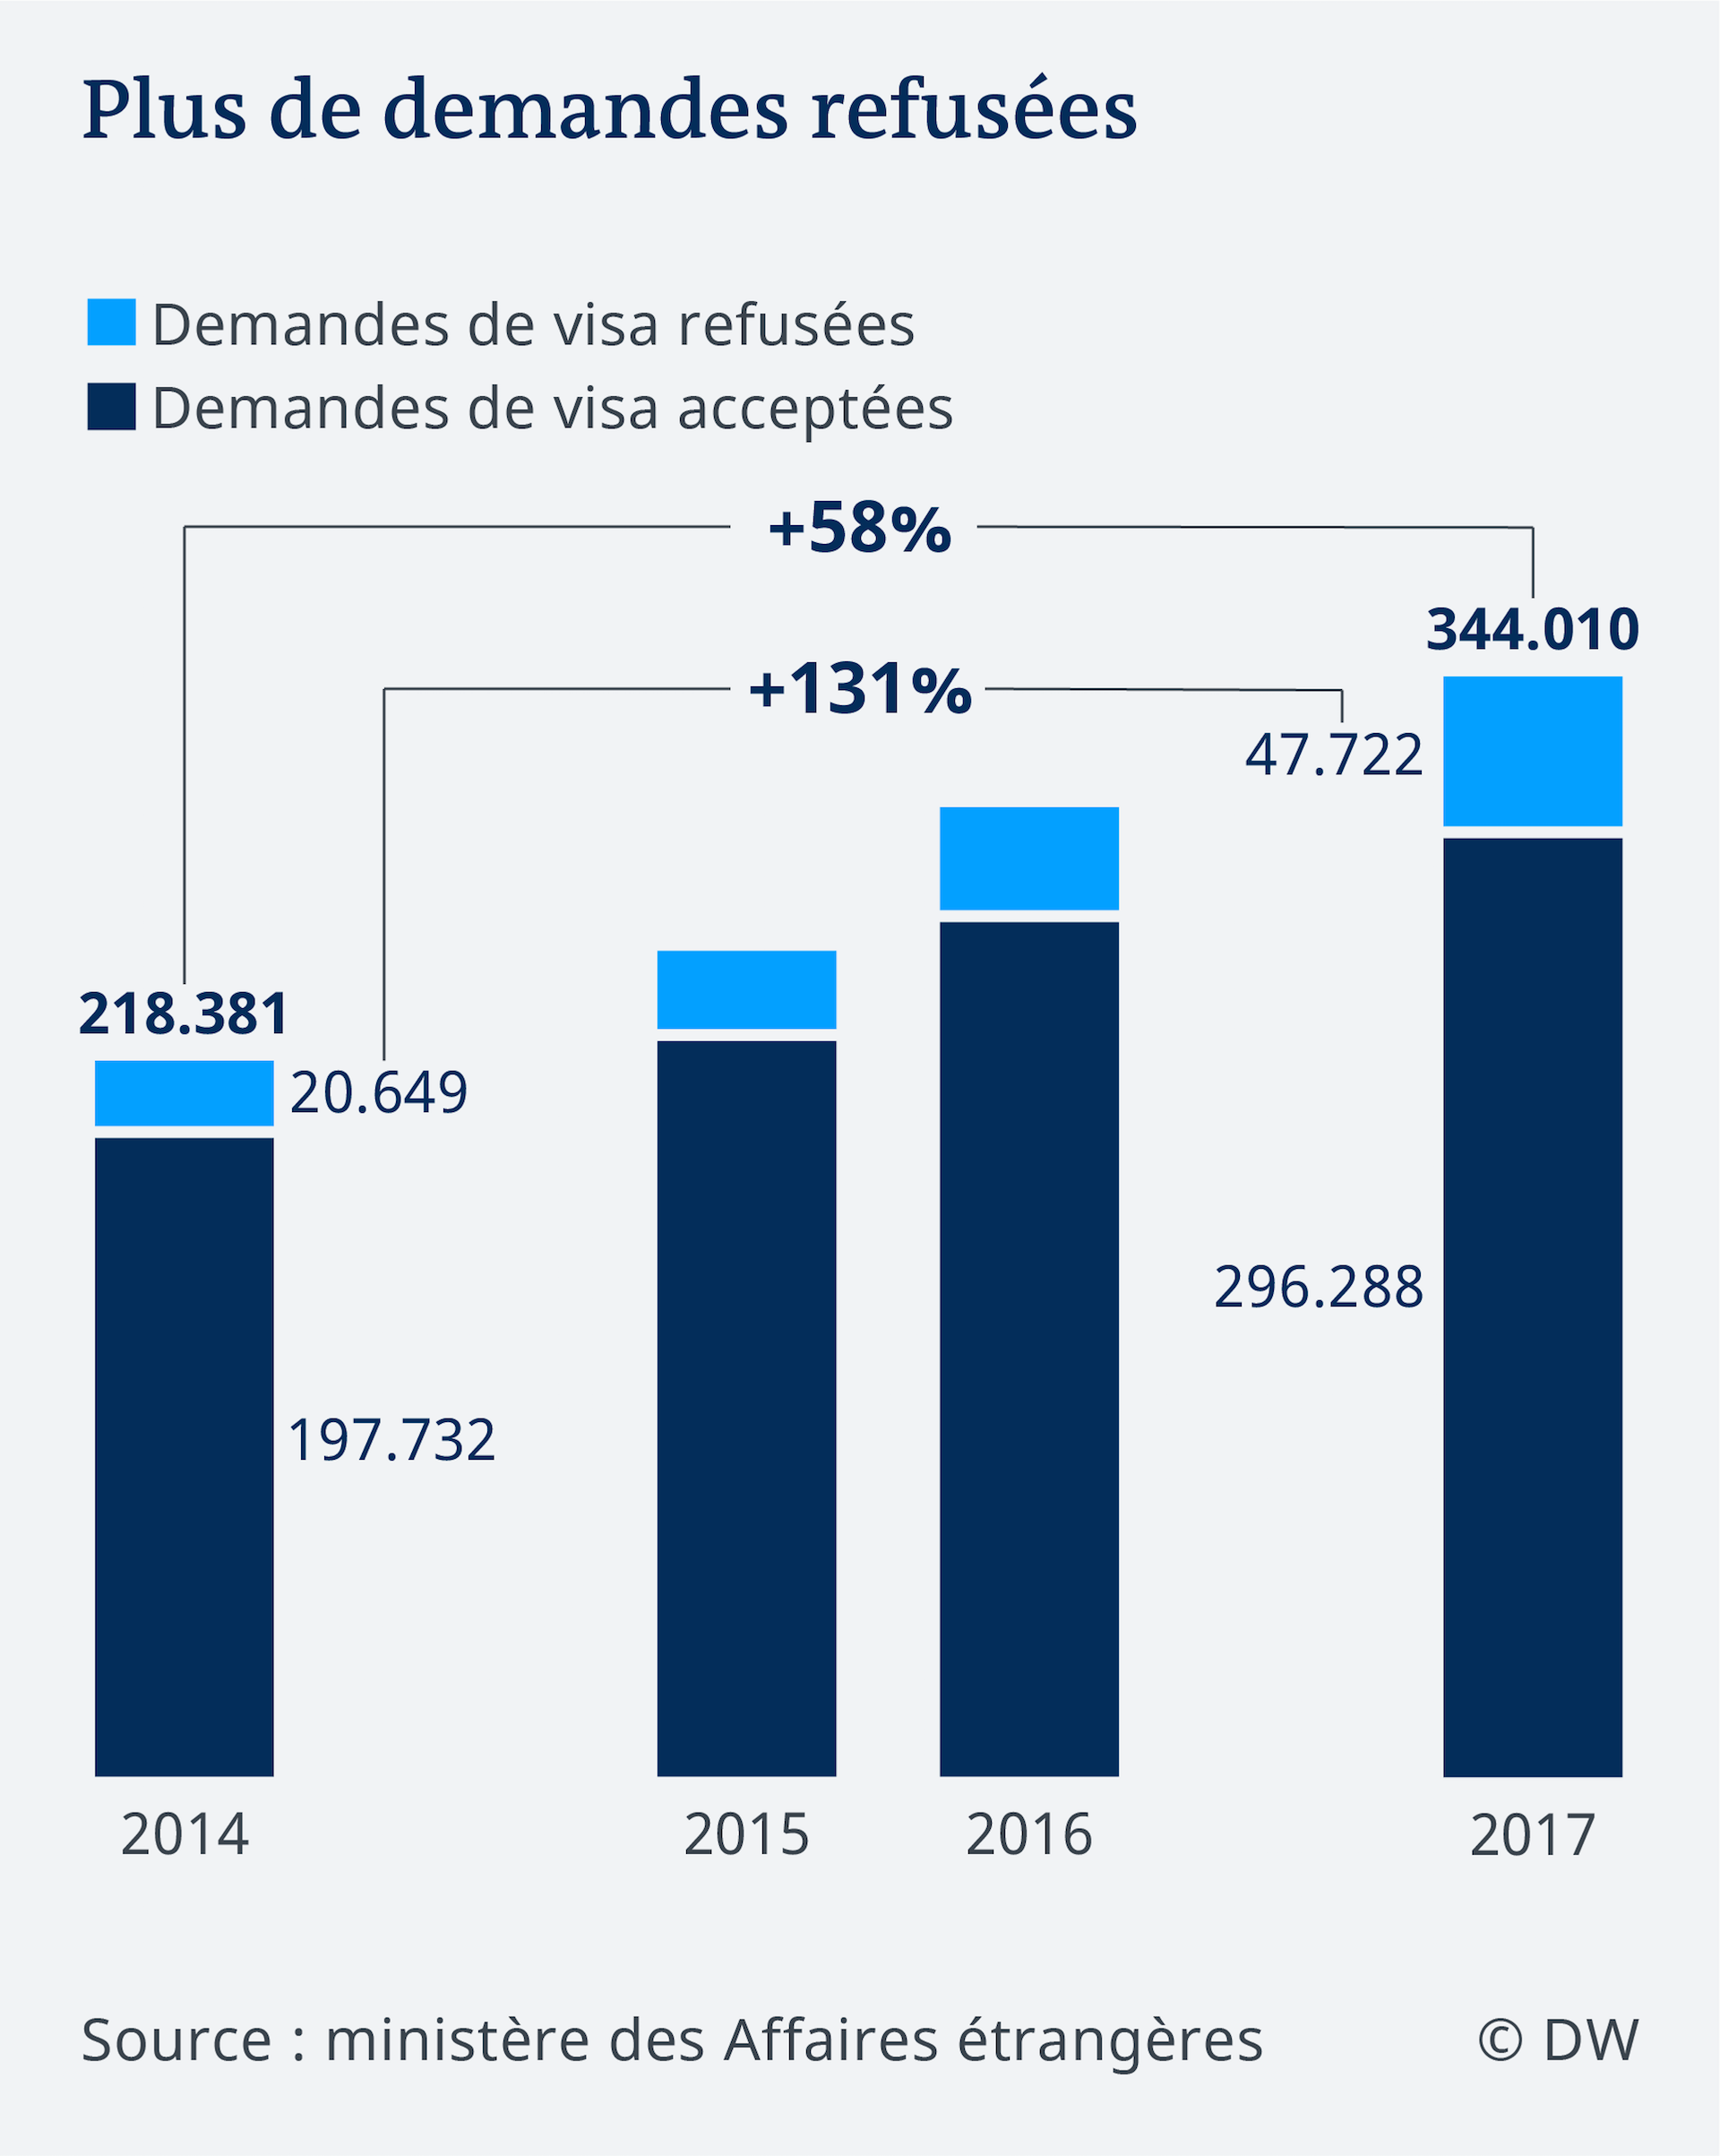 Data visualization FR visa applications to Germany over time